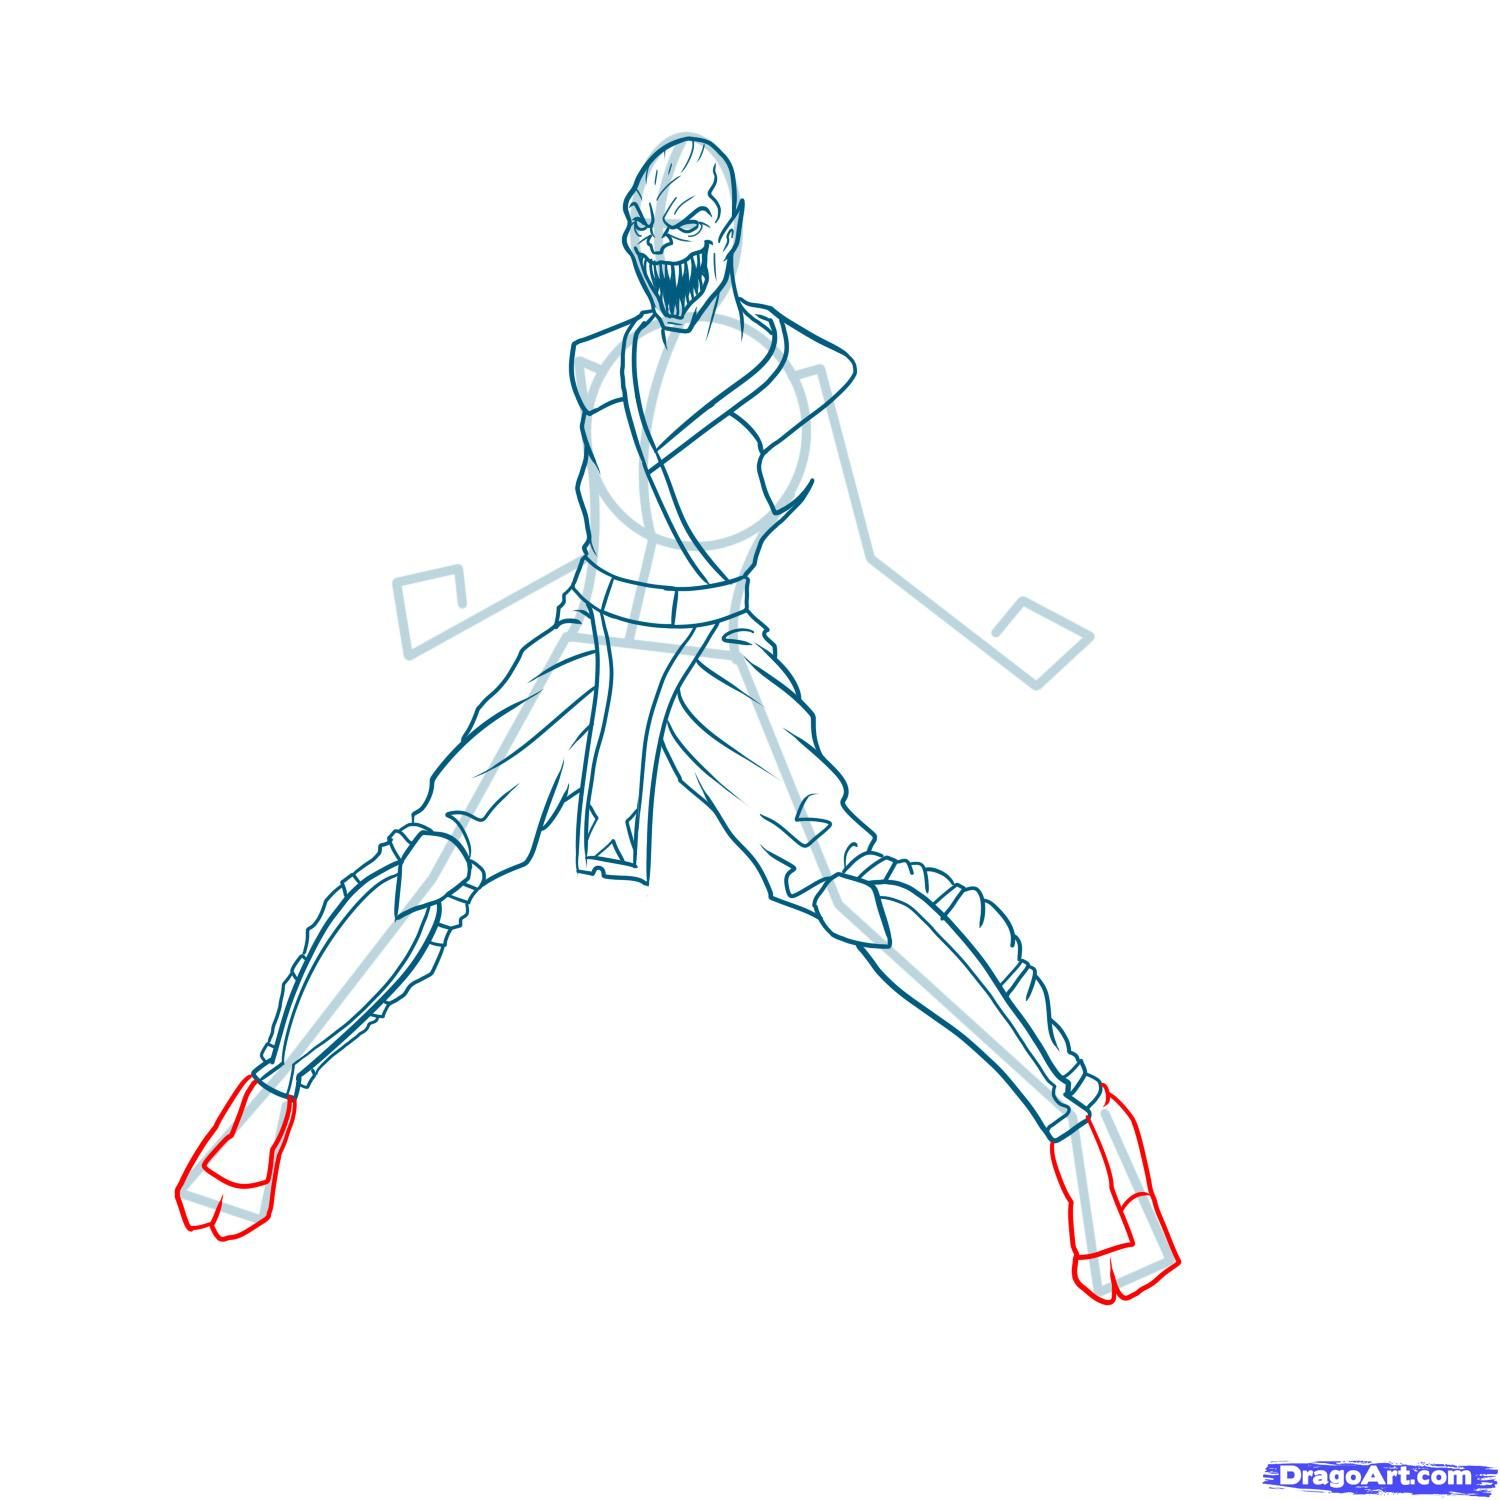 How to draw the Scorpion to the utmost from Mortal Kombat with a pencil step by step 12